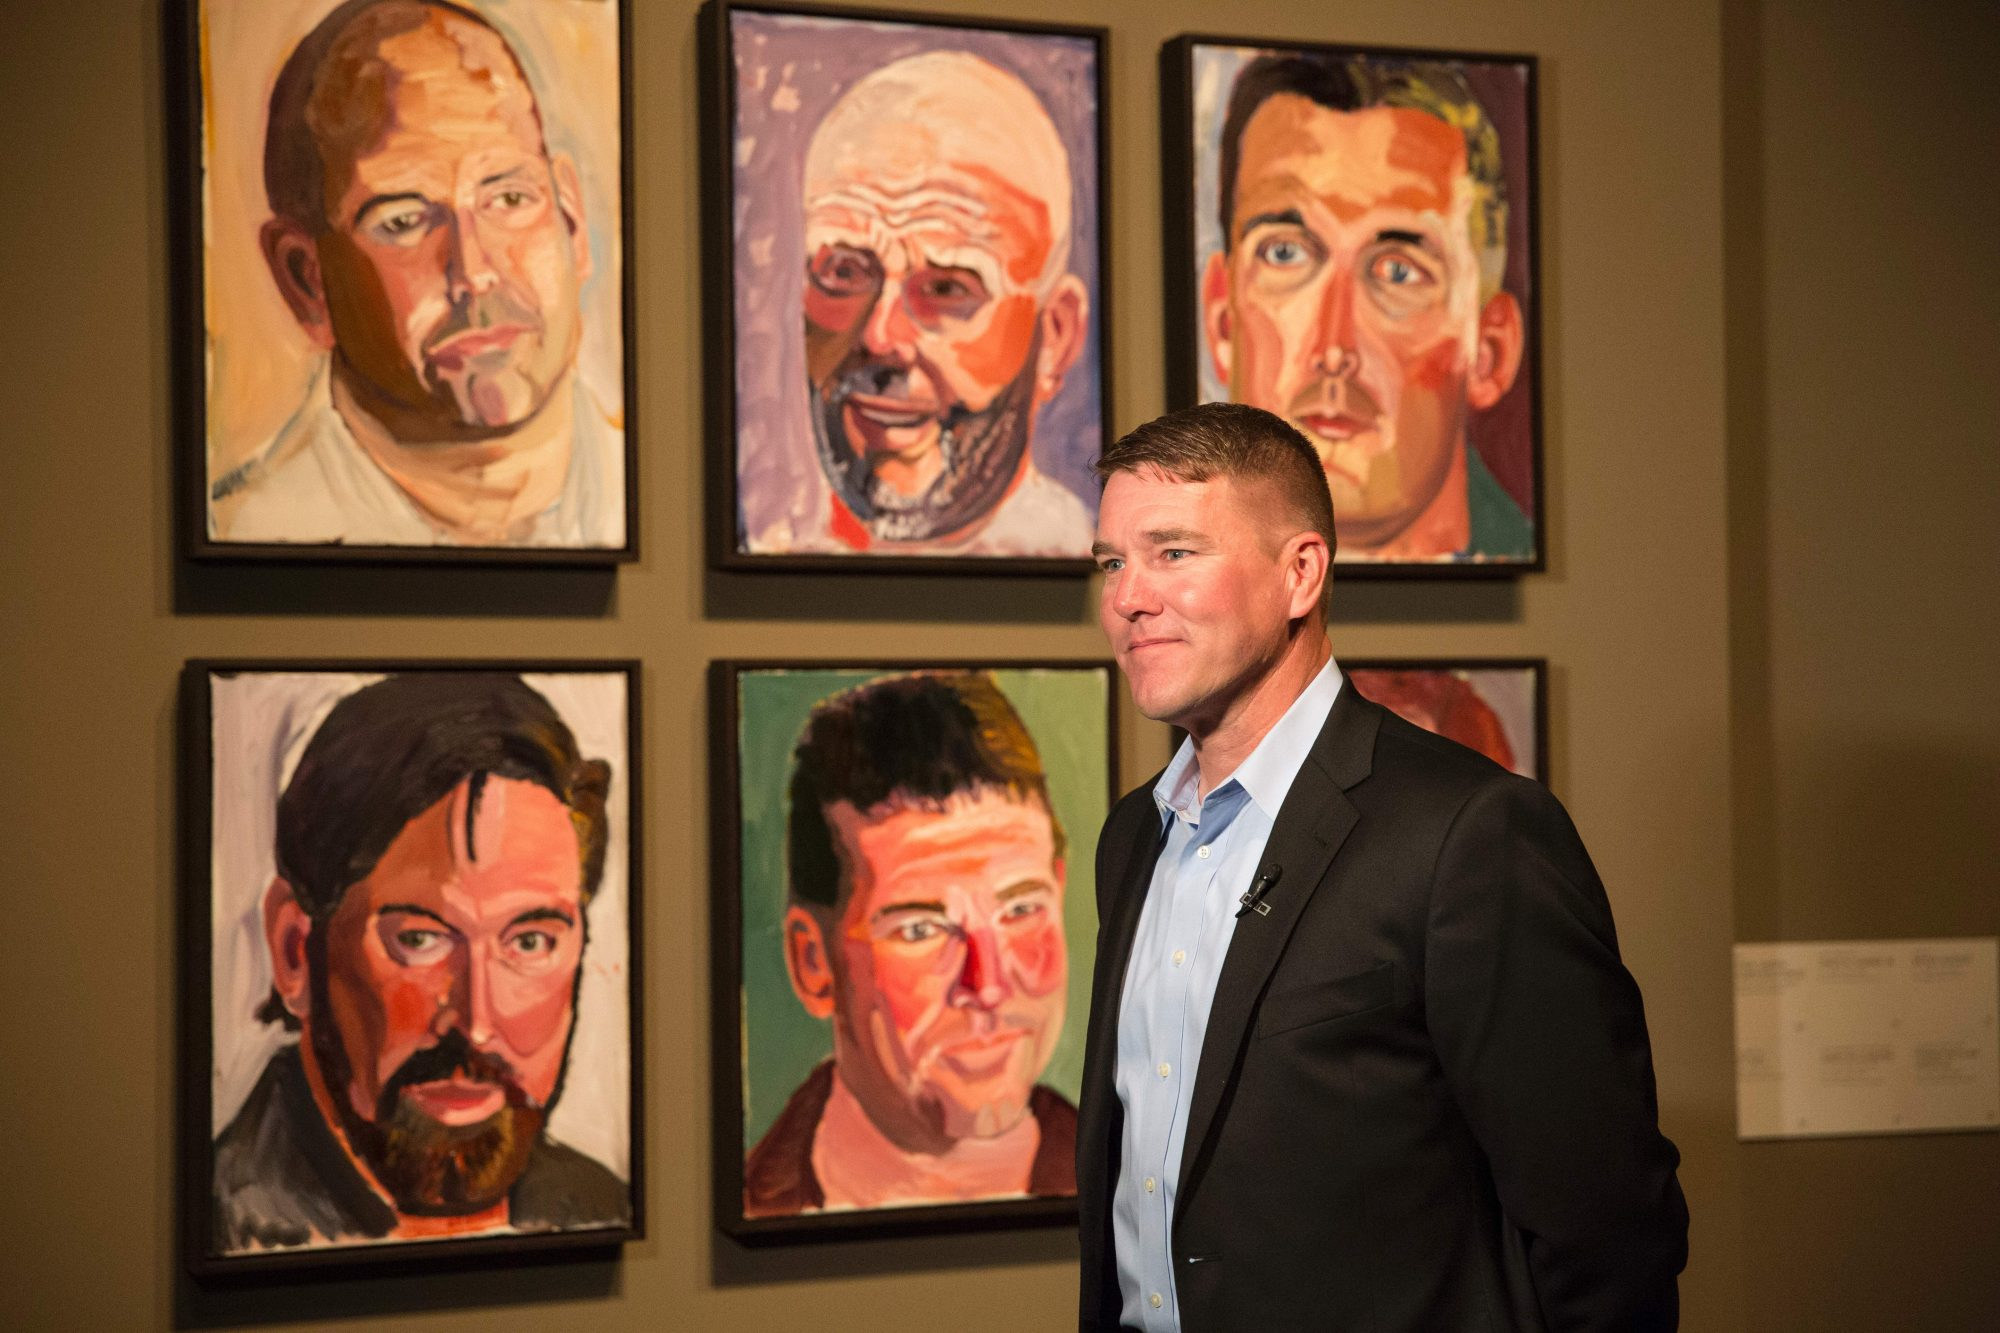 James Williamson Standing in Front of His Portrait by George W. Bush